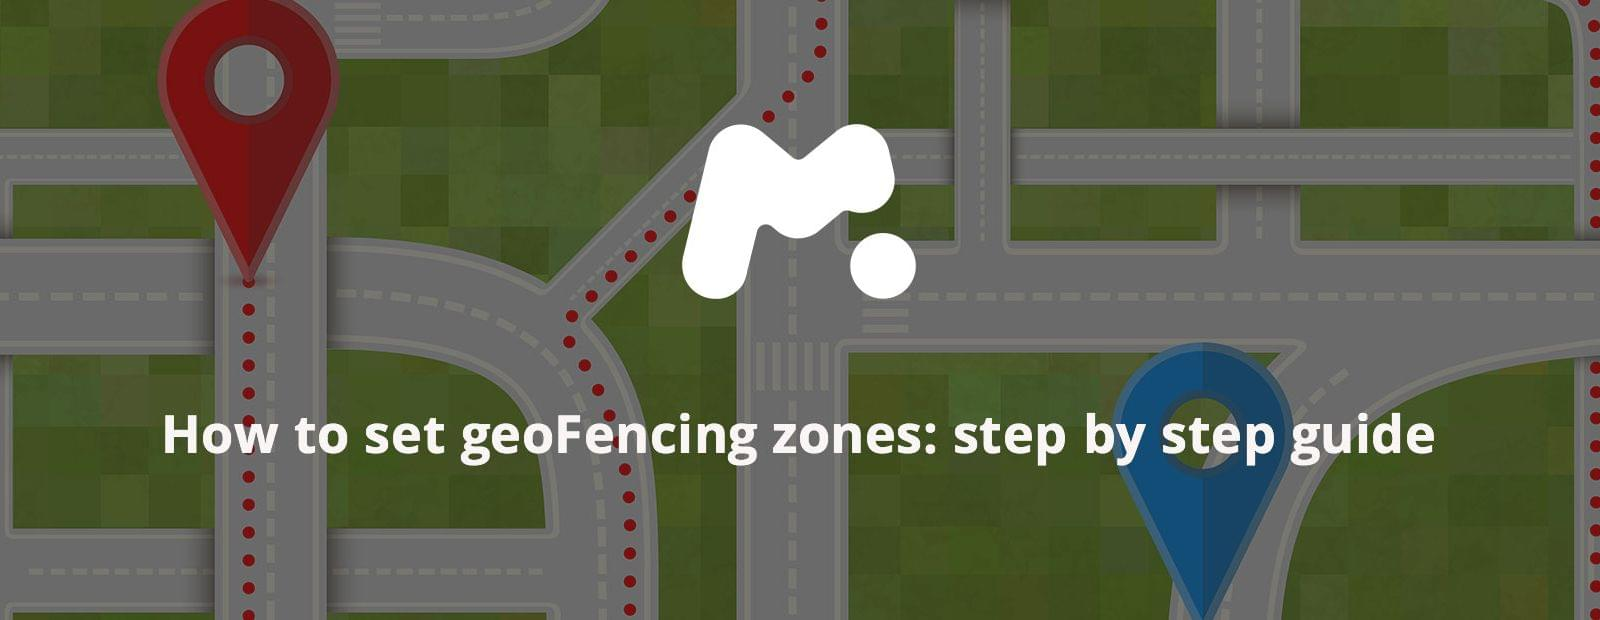 How to set Geofencing zones: Step by step guide